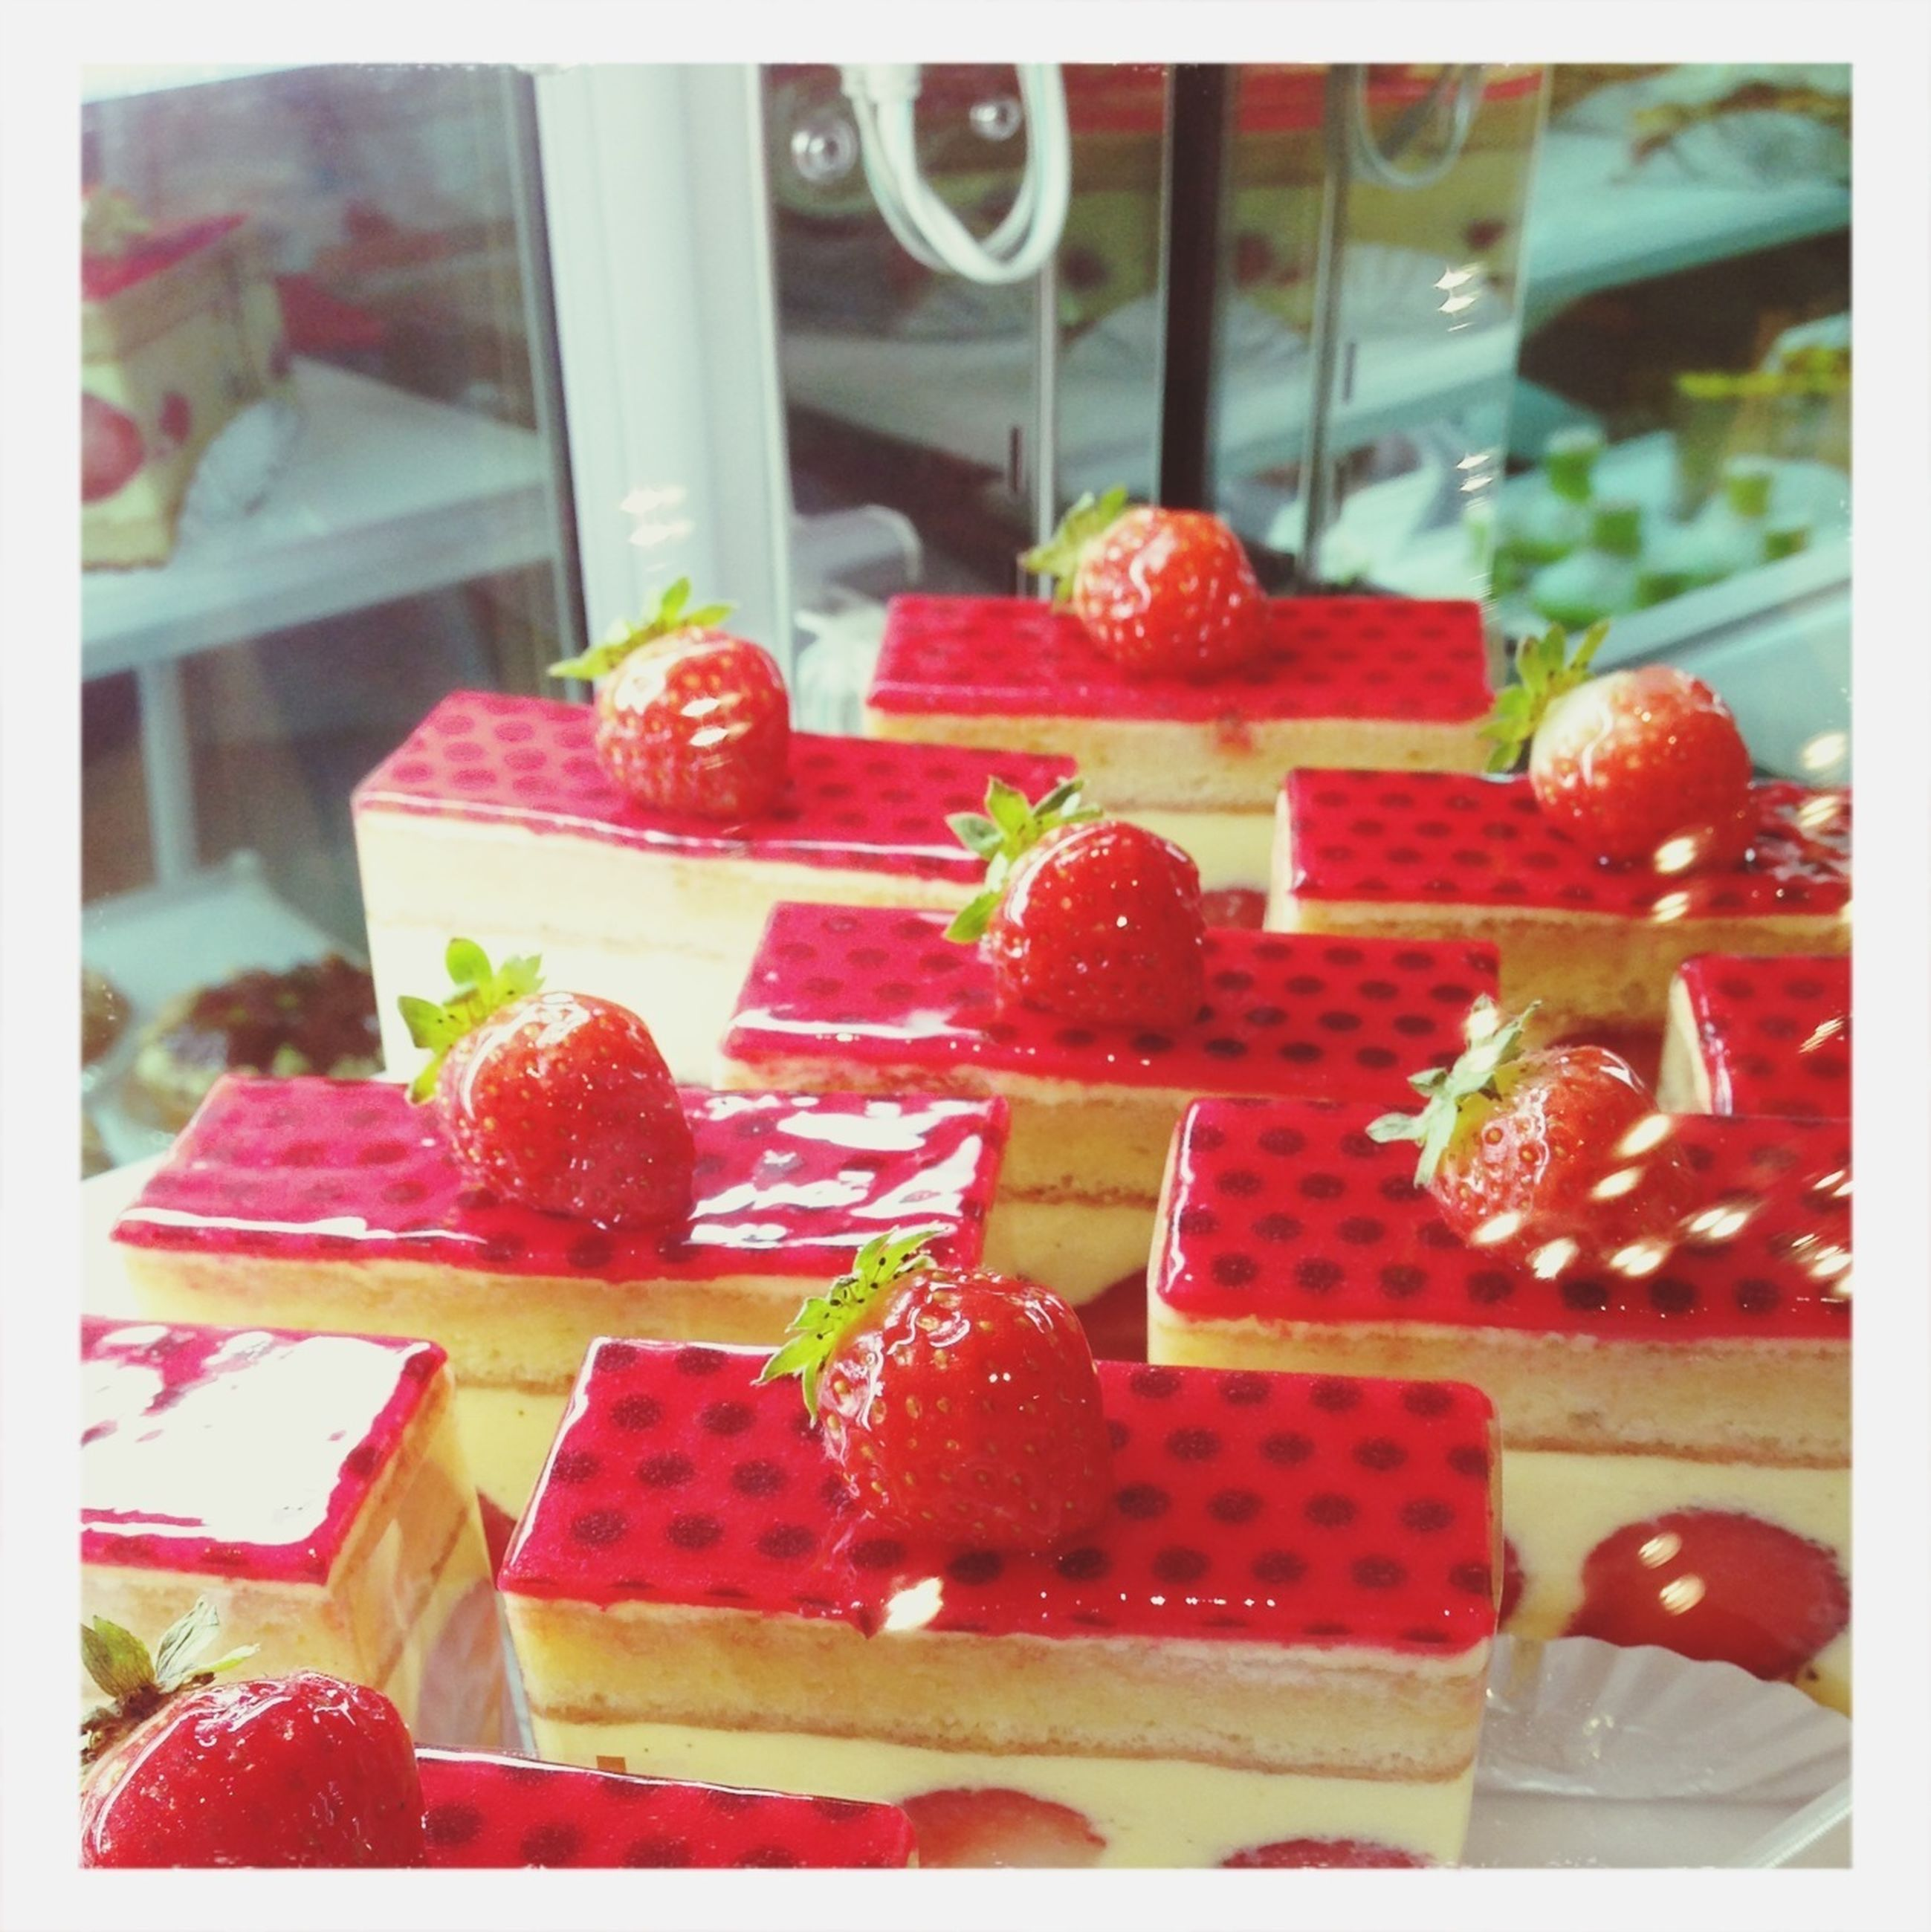 food and drink, freshness, transfer print, food, indoors, red, fruit, strawberry, sweet food, auto post production filter, healthy eating, dessert, table, indulgence, close-up, still life, ready-to-eat, focus on foreground, cake